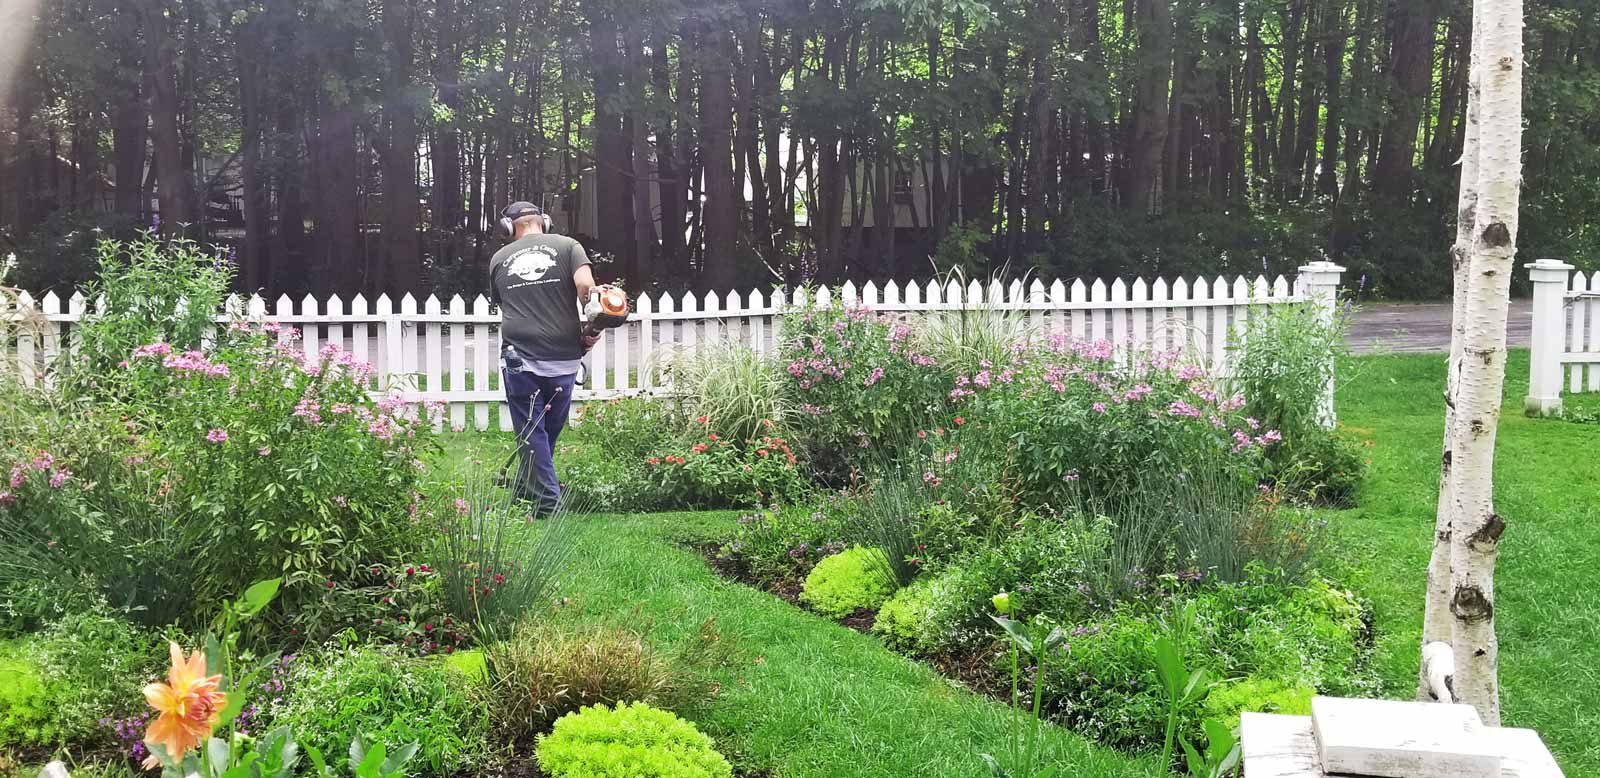 Man edging gardens